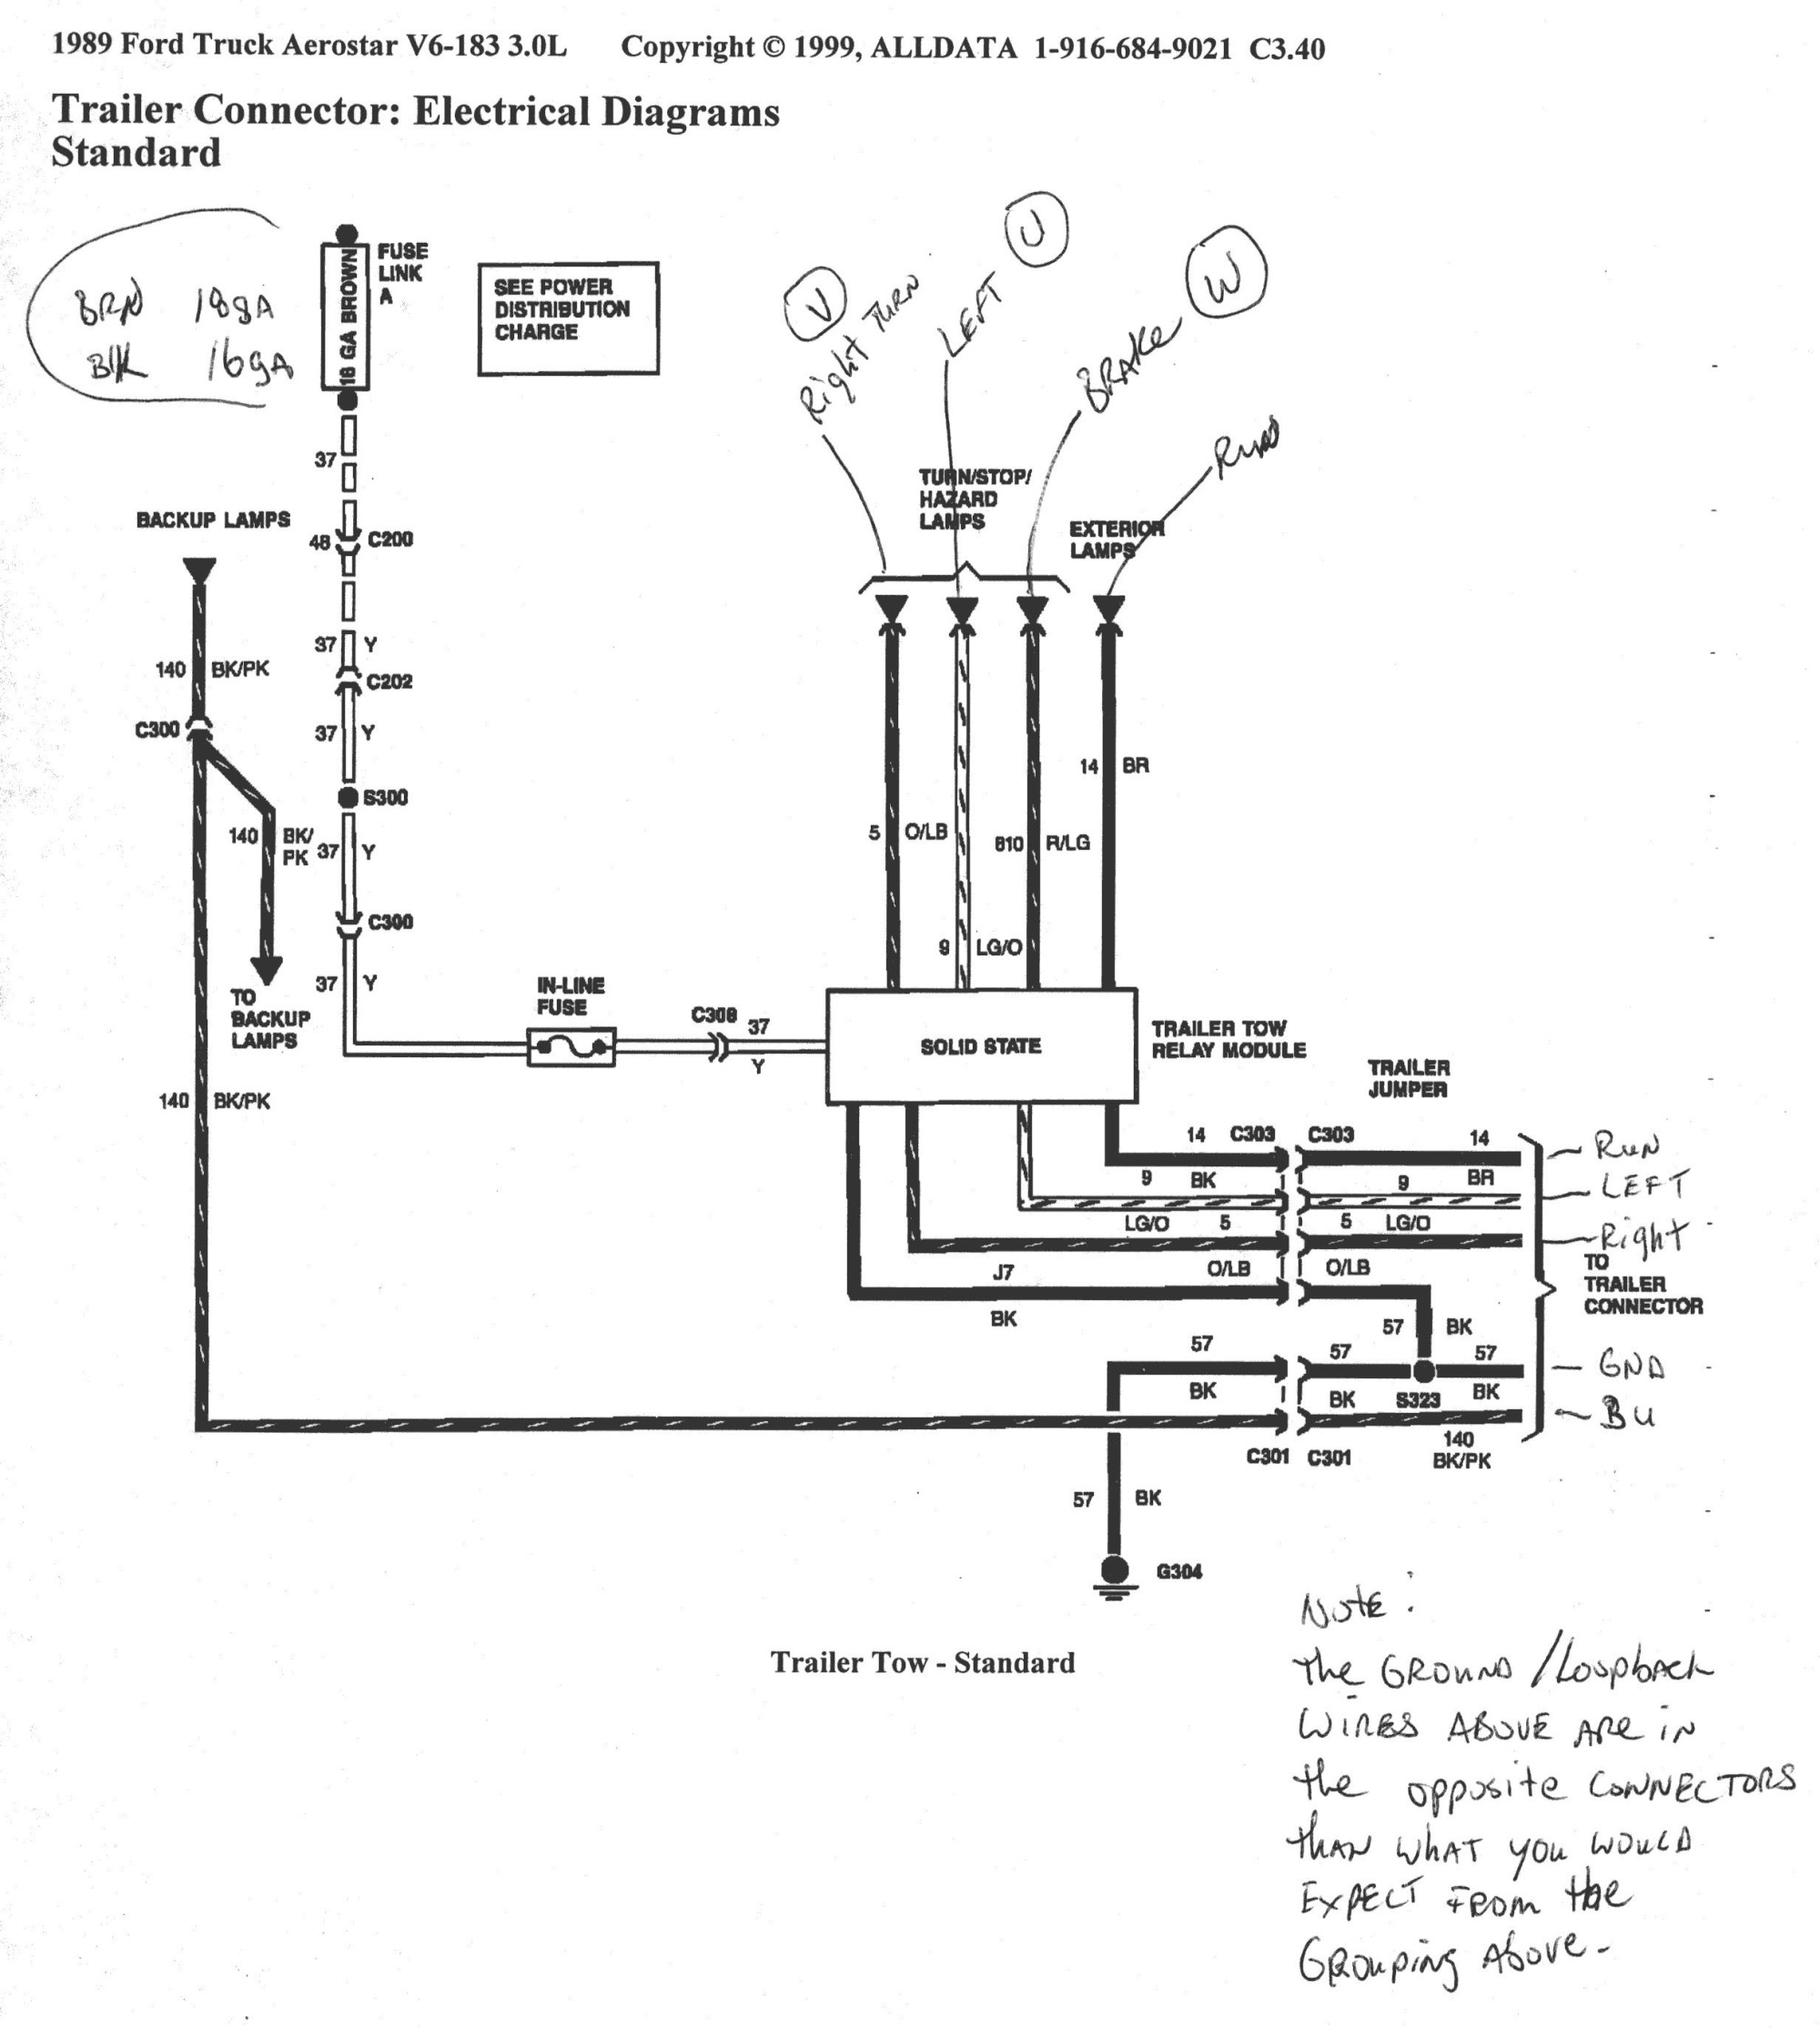 hight resolution of ford 7810 wiring diagram wiring diagram centre ford 7810 wiring diagram